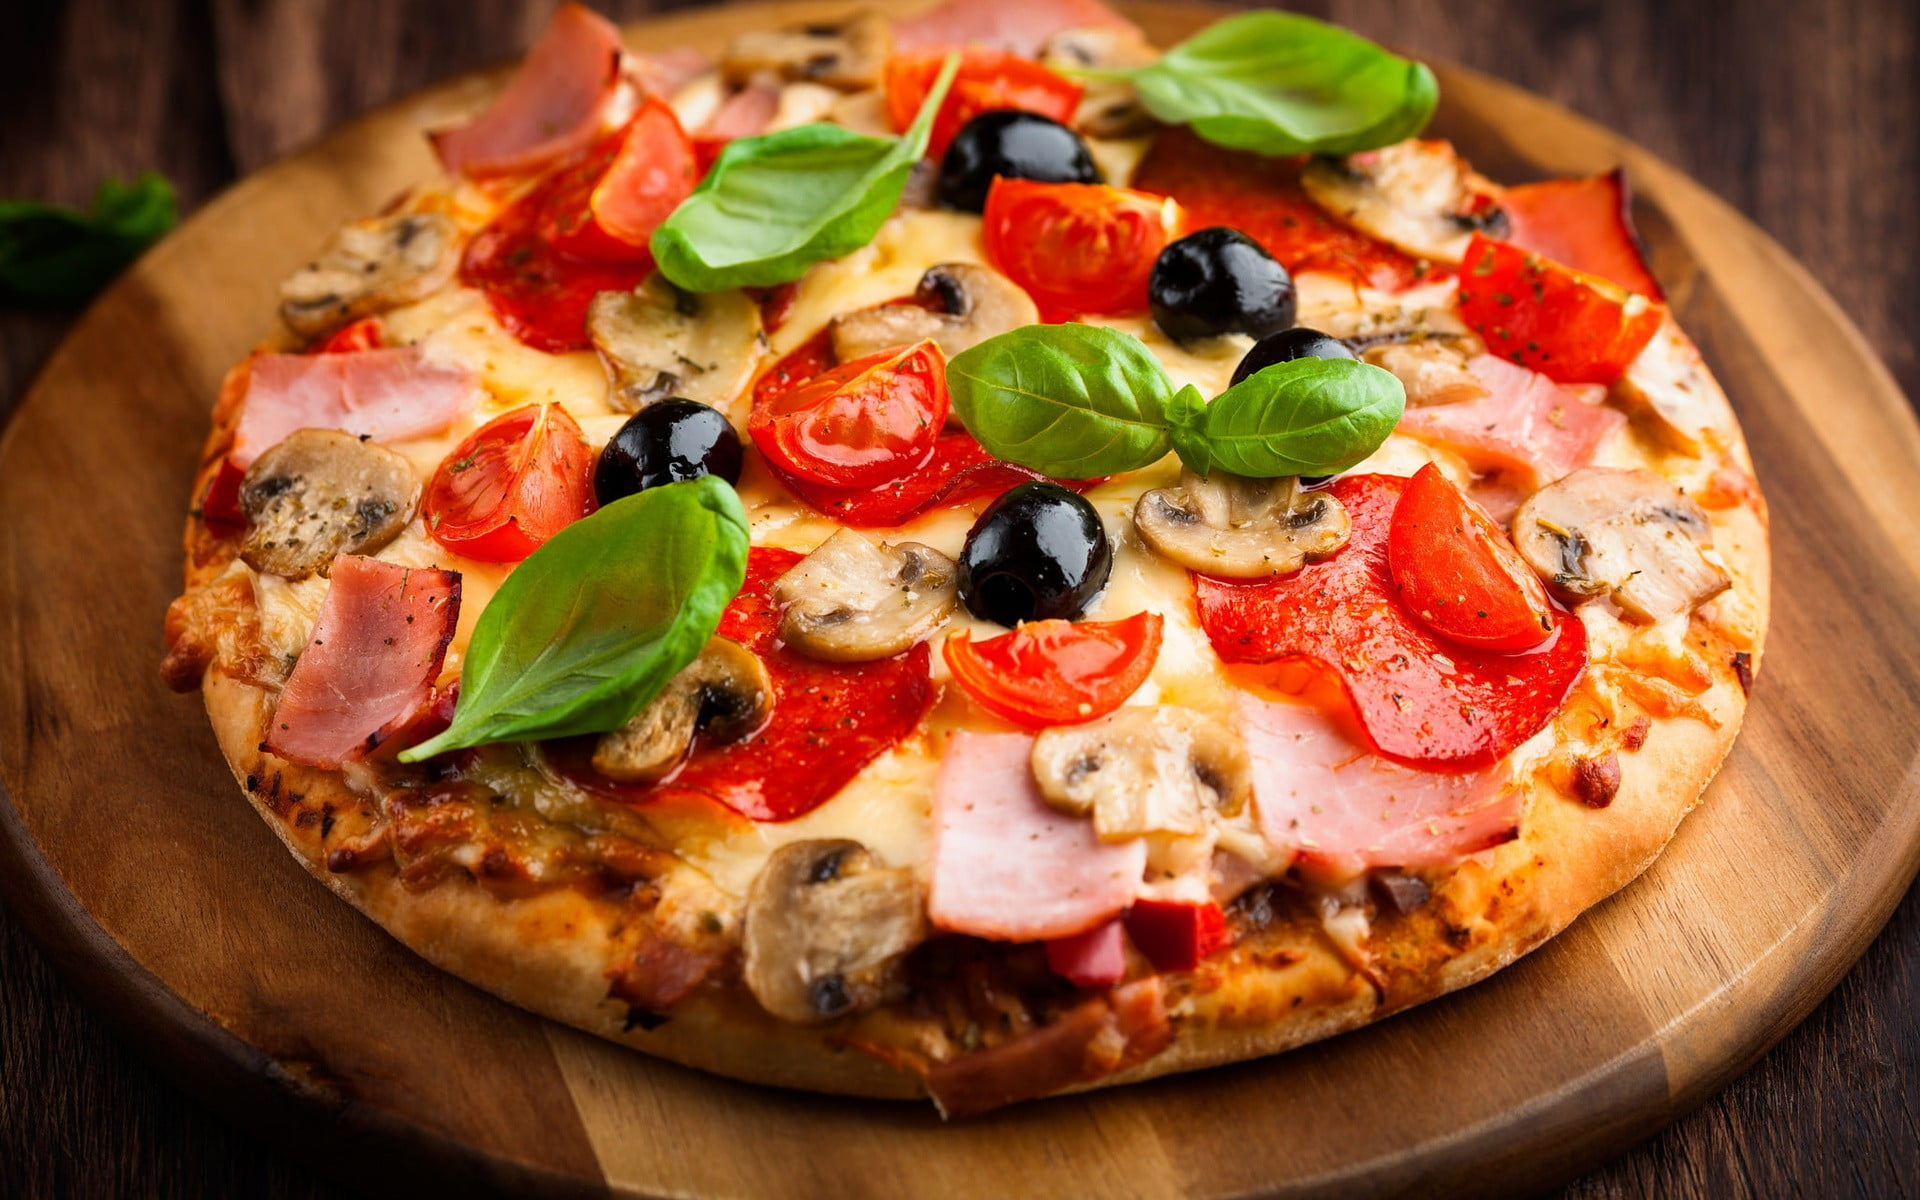 Pepperoni pizza on wooden tray HD wallpaper Wallpaper Flare 1920x1200